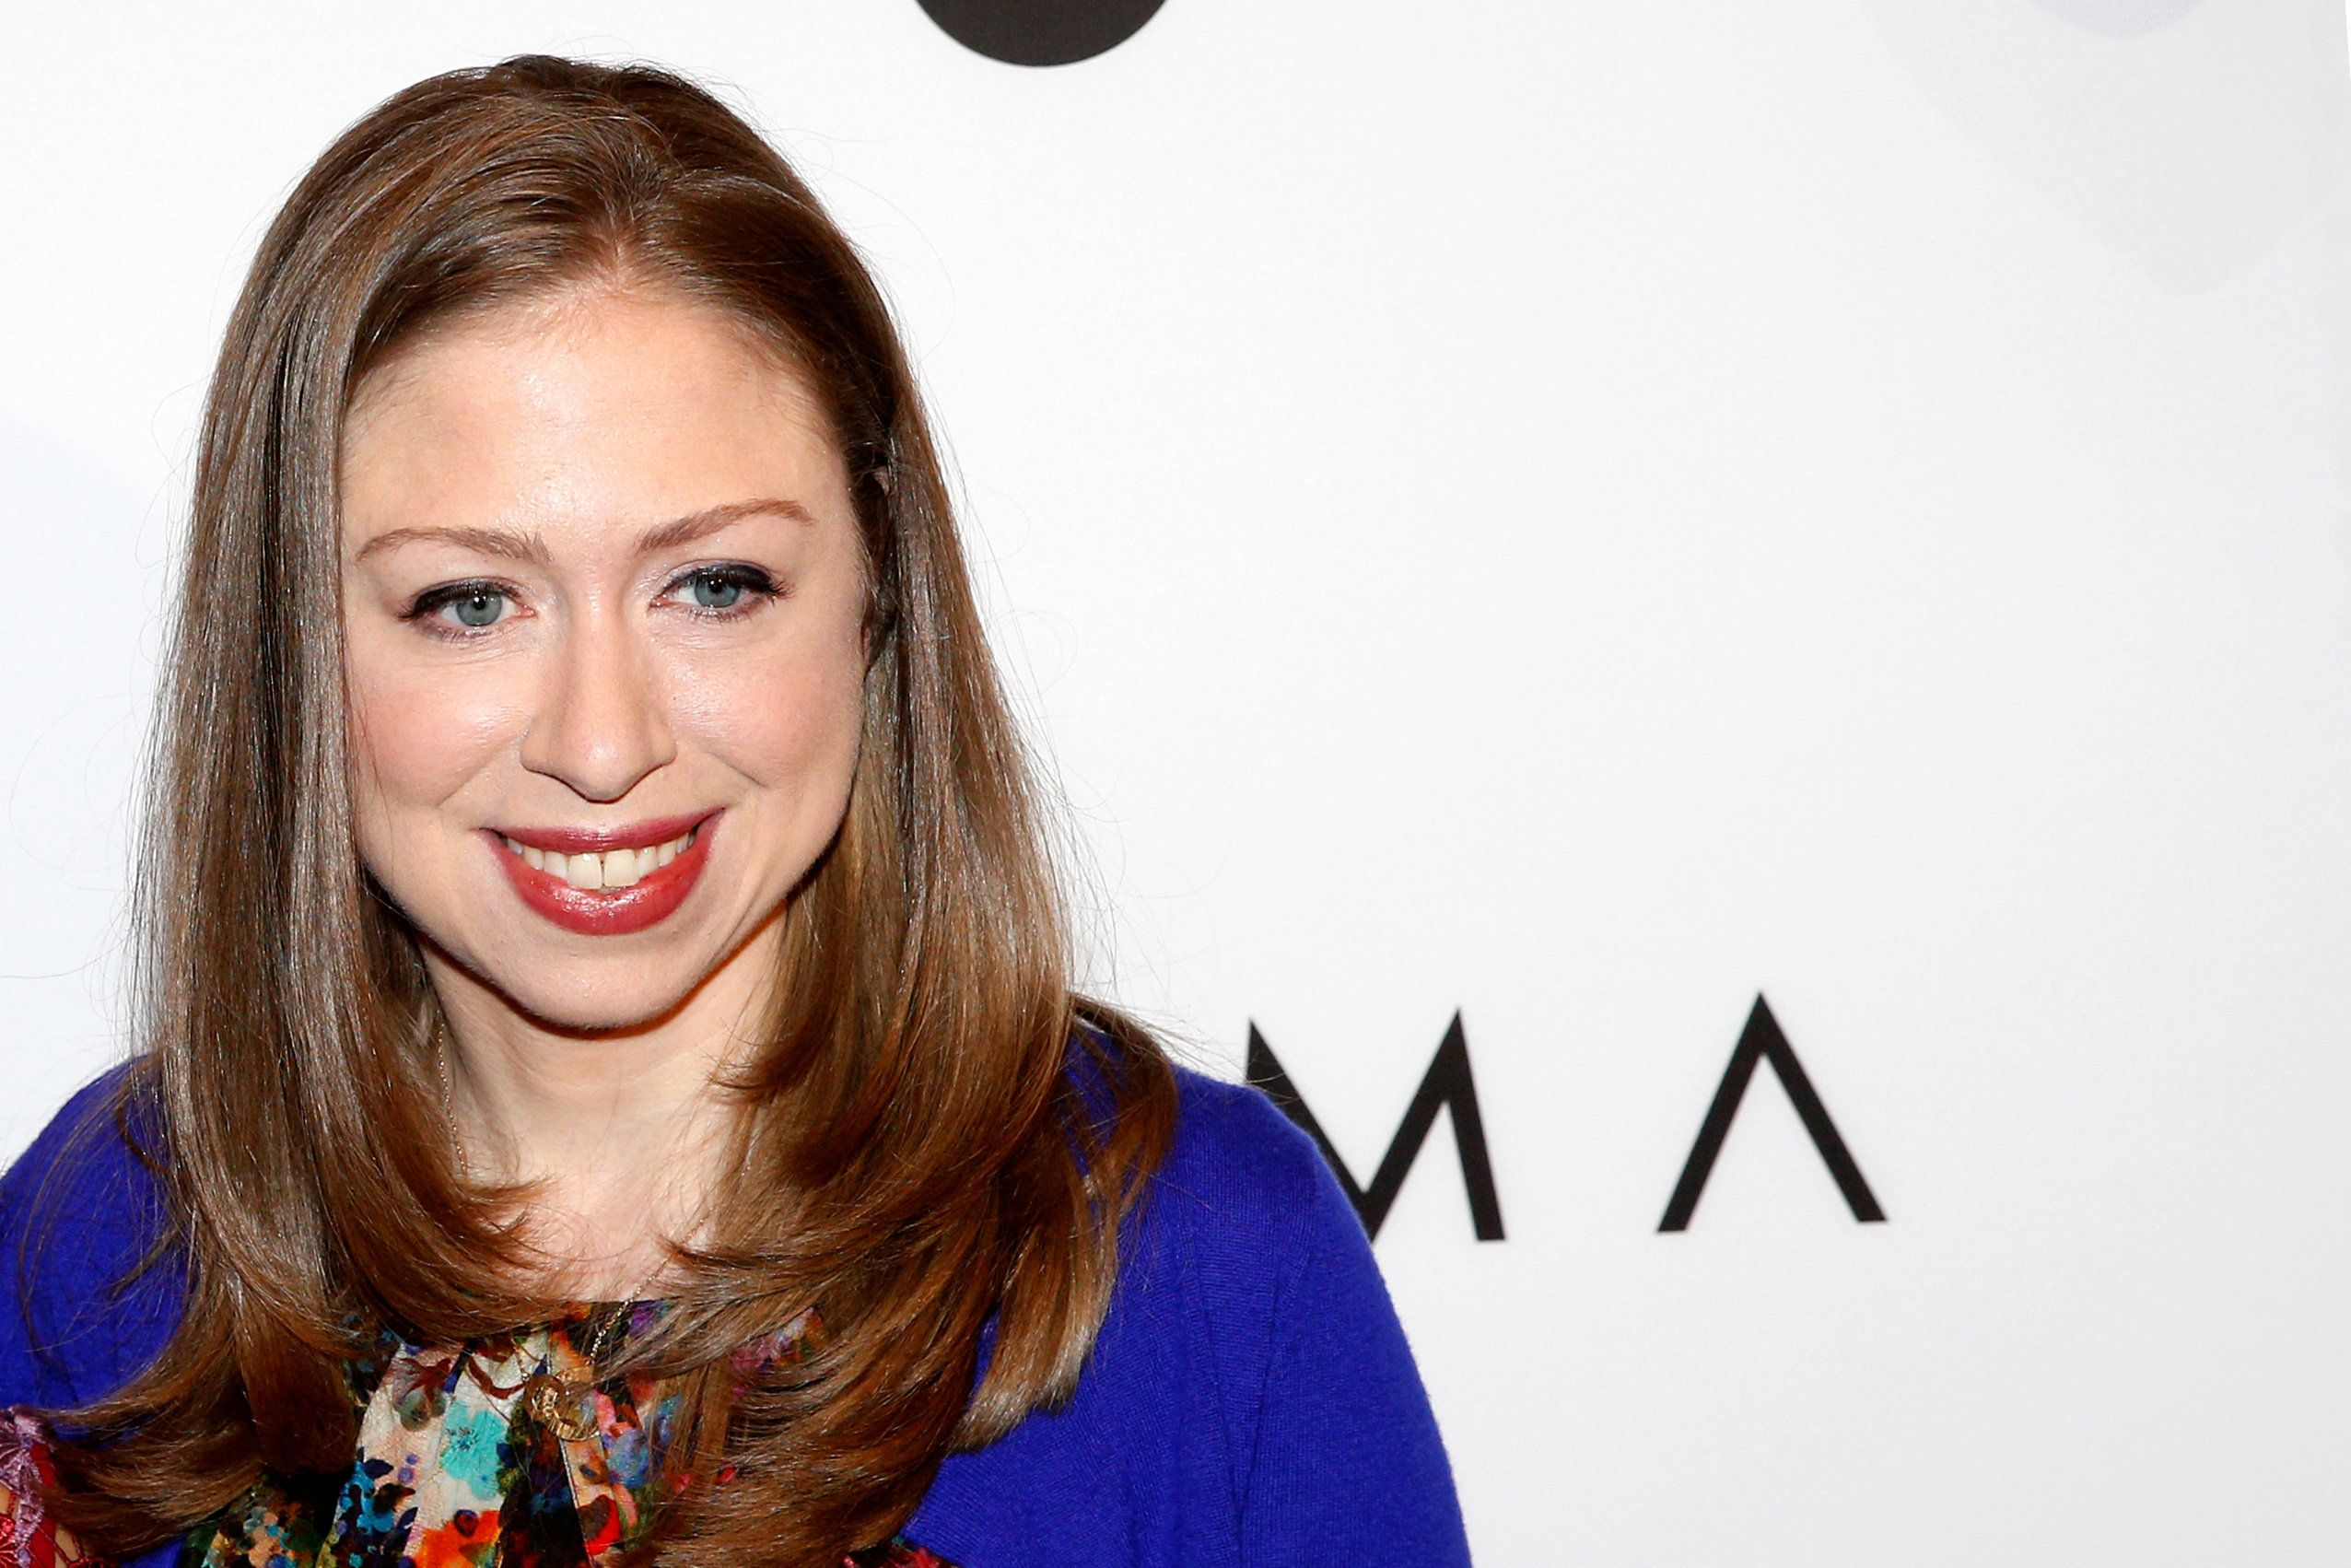 Chelsea Clinton arrives for Variety's Power of Women luncheon in New York City, U.S., April 21, 2017. REUTERS/Brendan McDermid